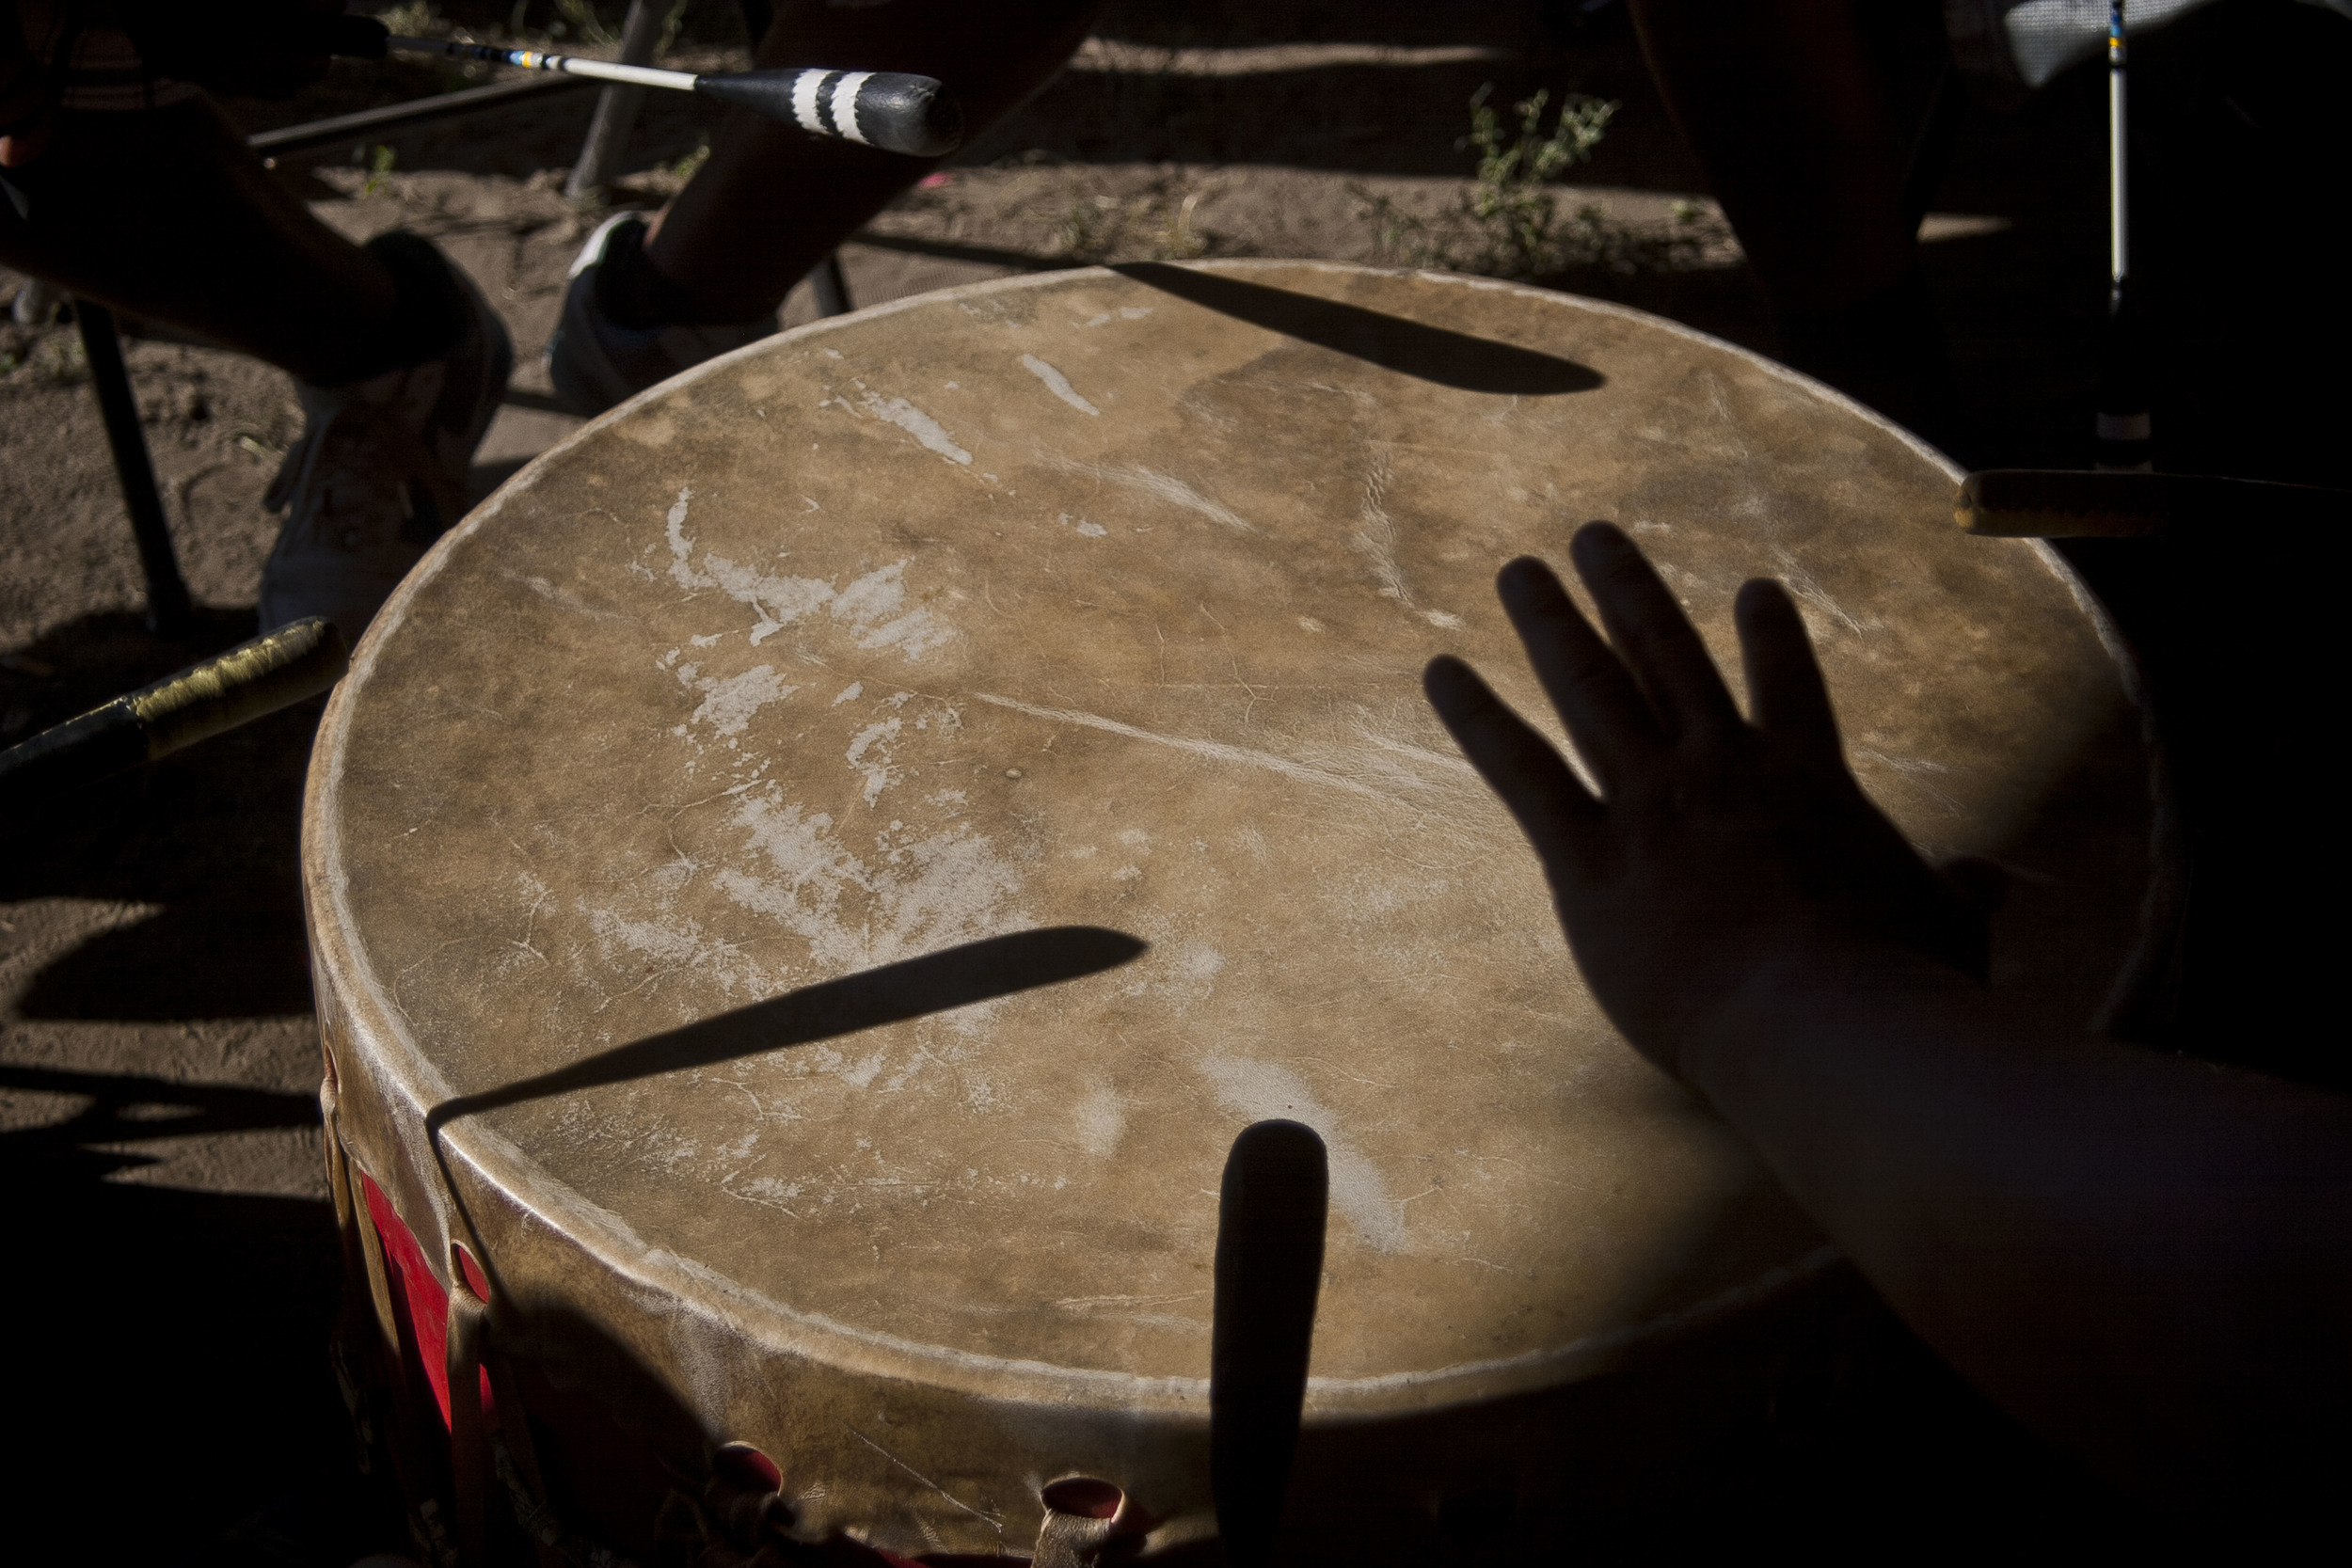 Hand and drum.